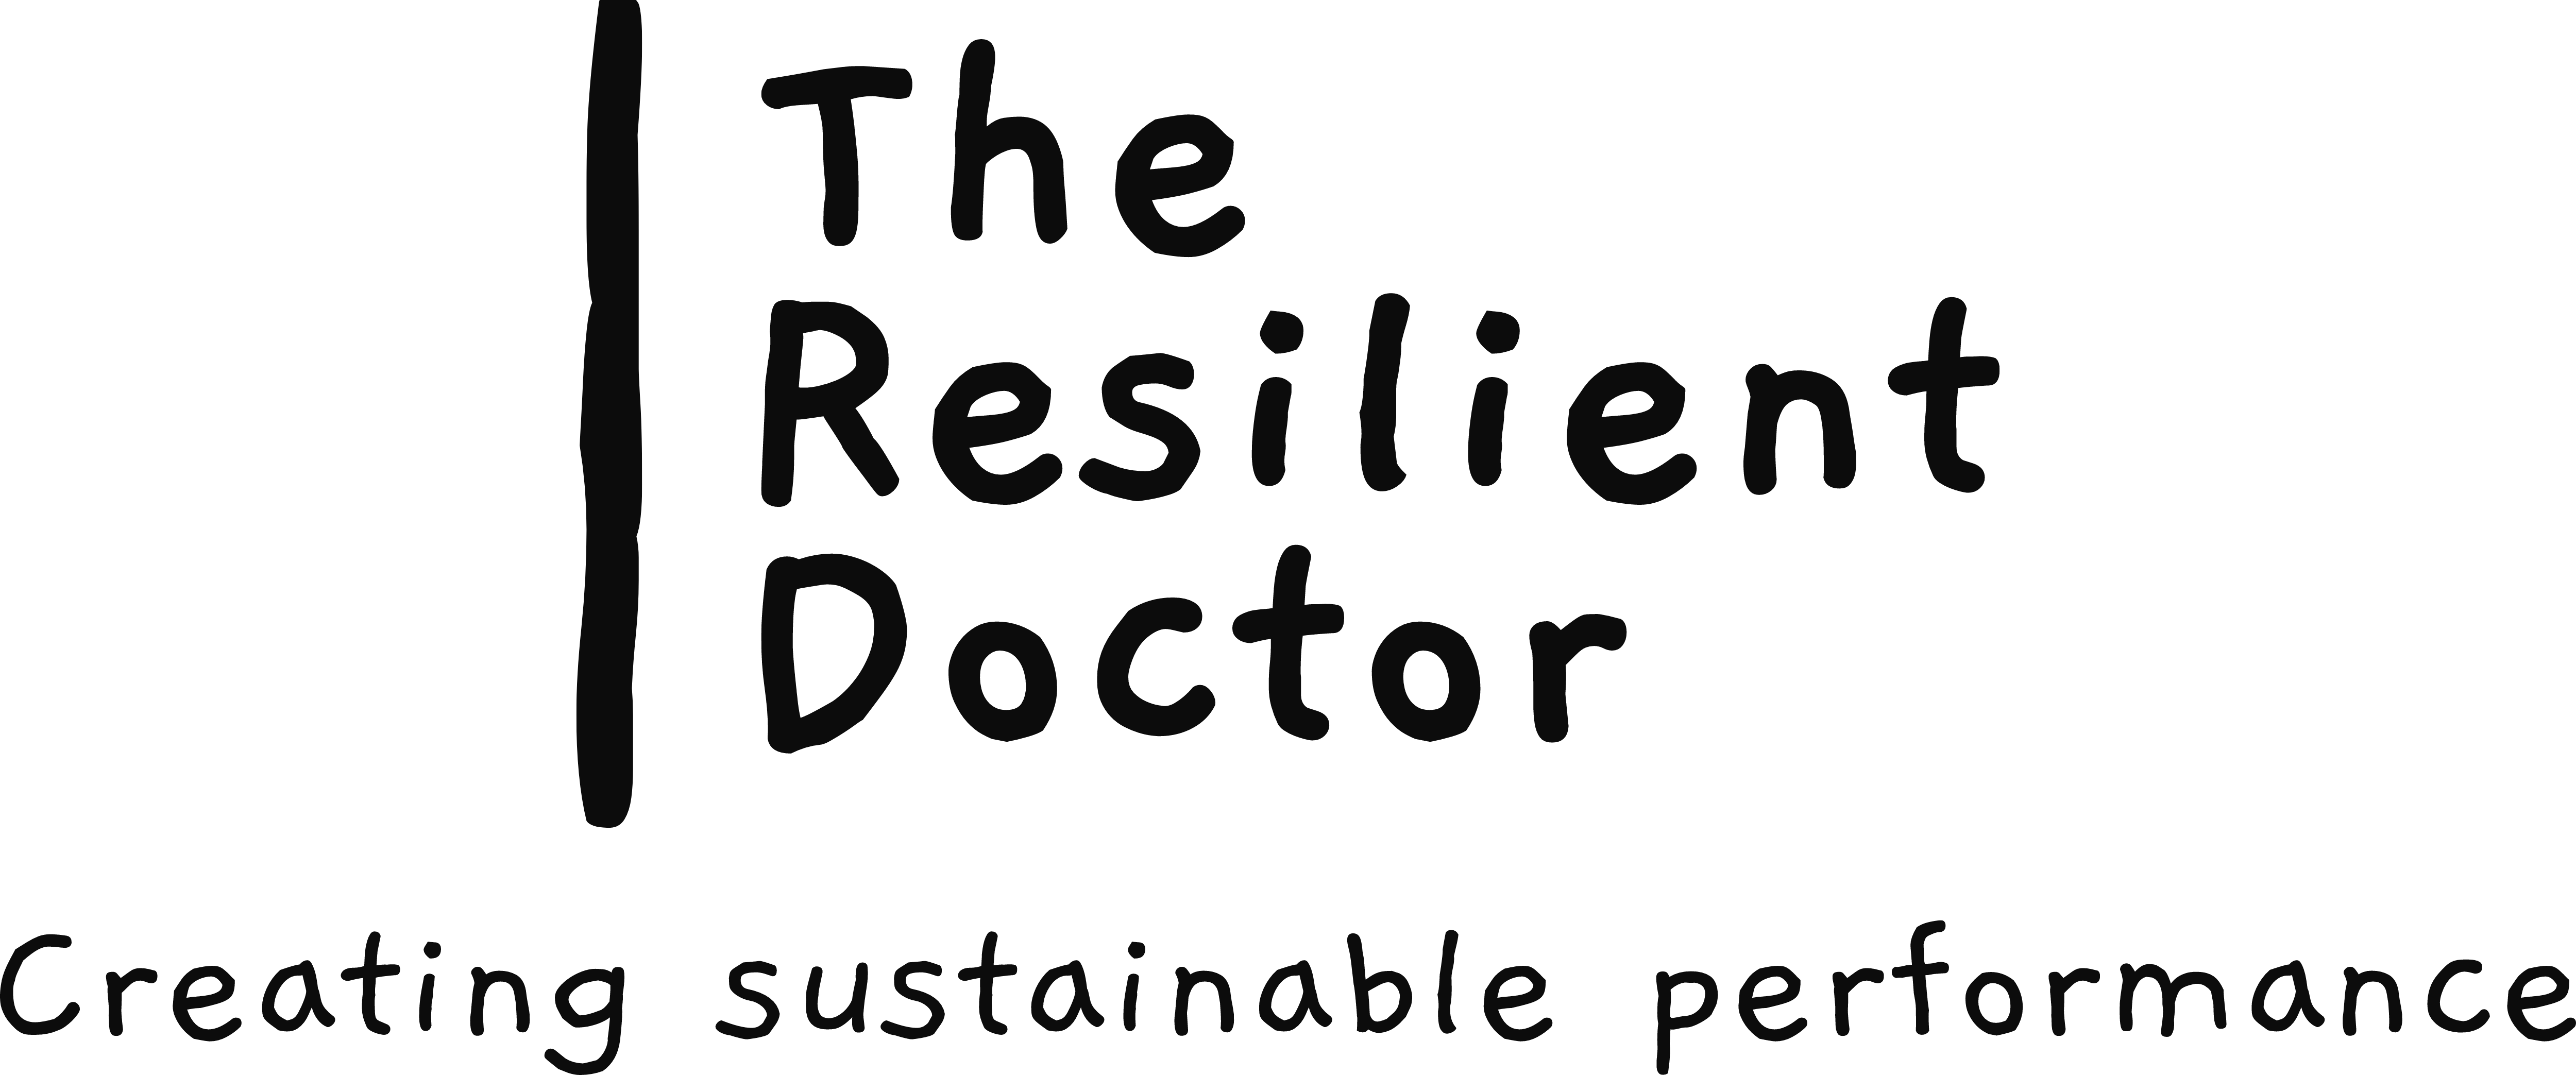 The Resilient Doctor